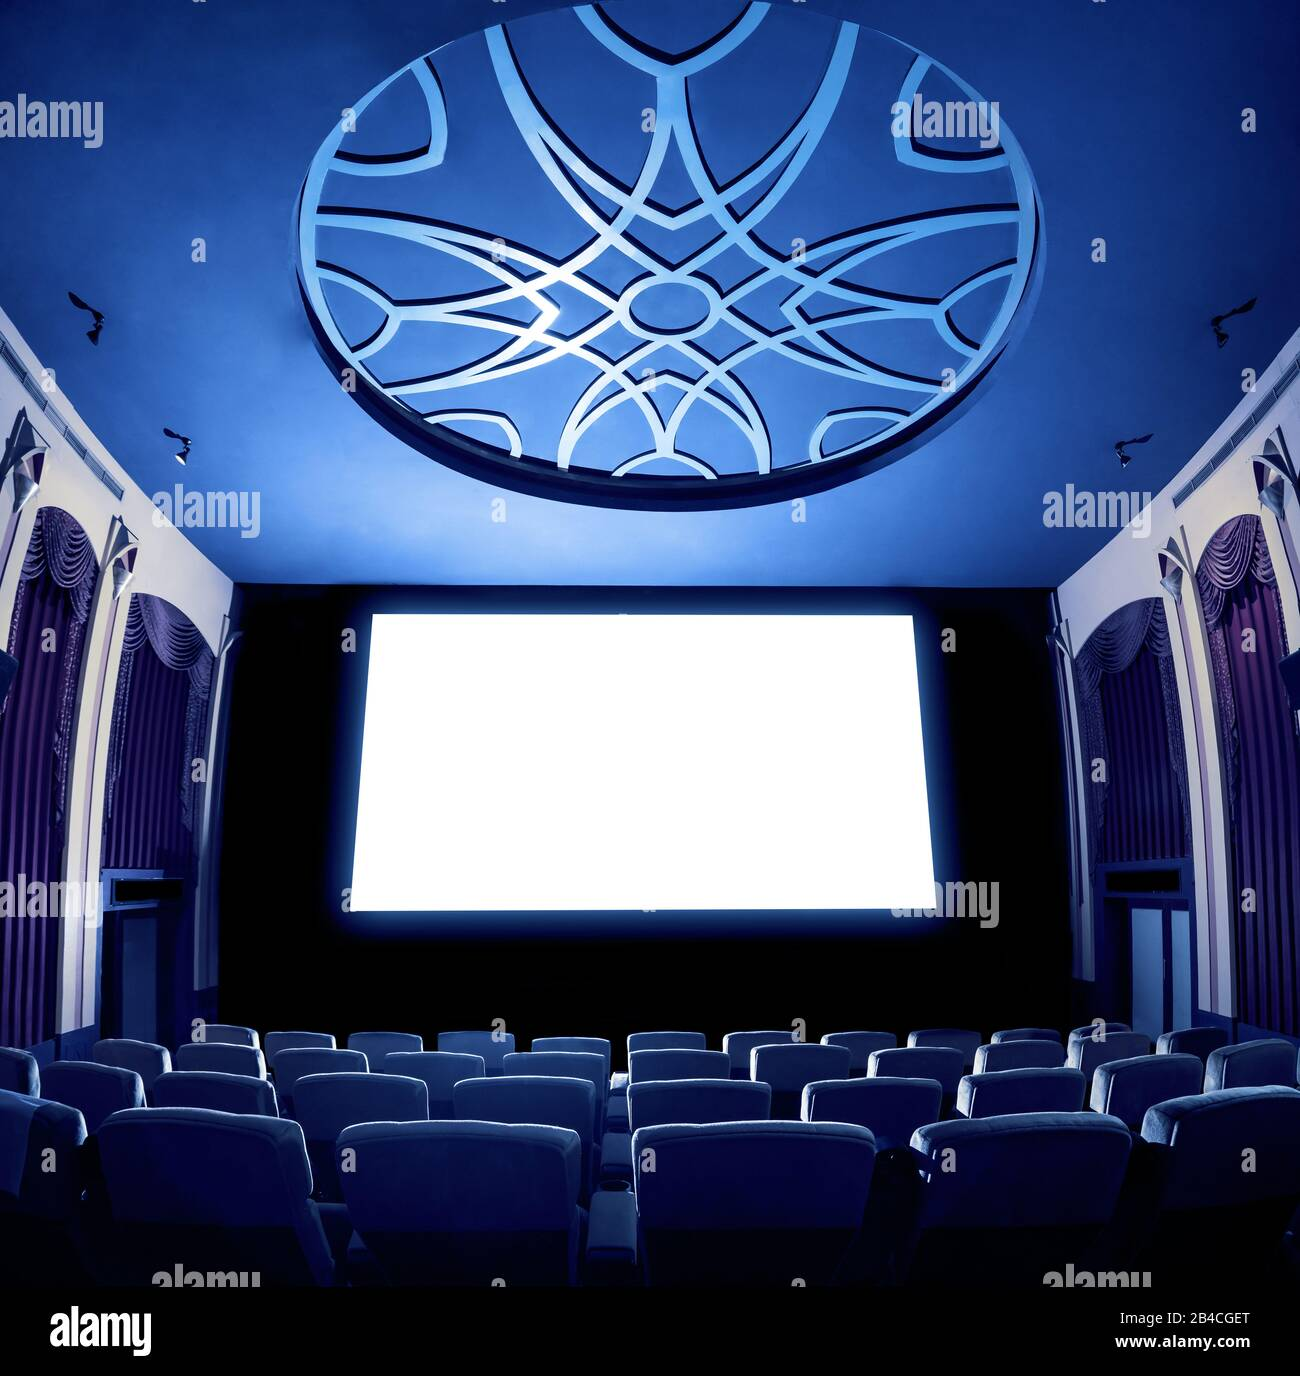 Cinema Theater Screen In Front Of Seat Rows In Movie Theater Showing White Screen Projected From Cinematograph The Cinema Theater Is Decorated In Cla Stock Photo Alamy